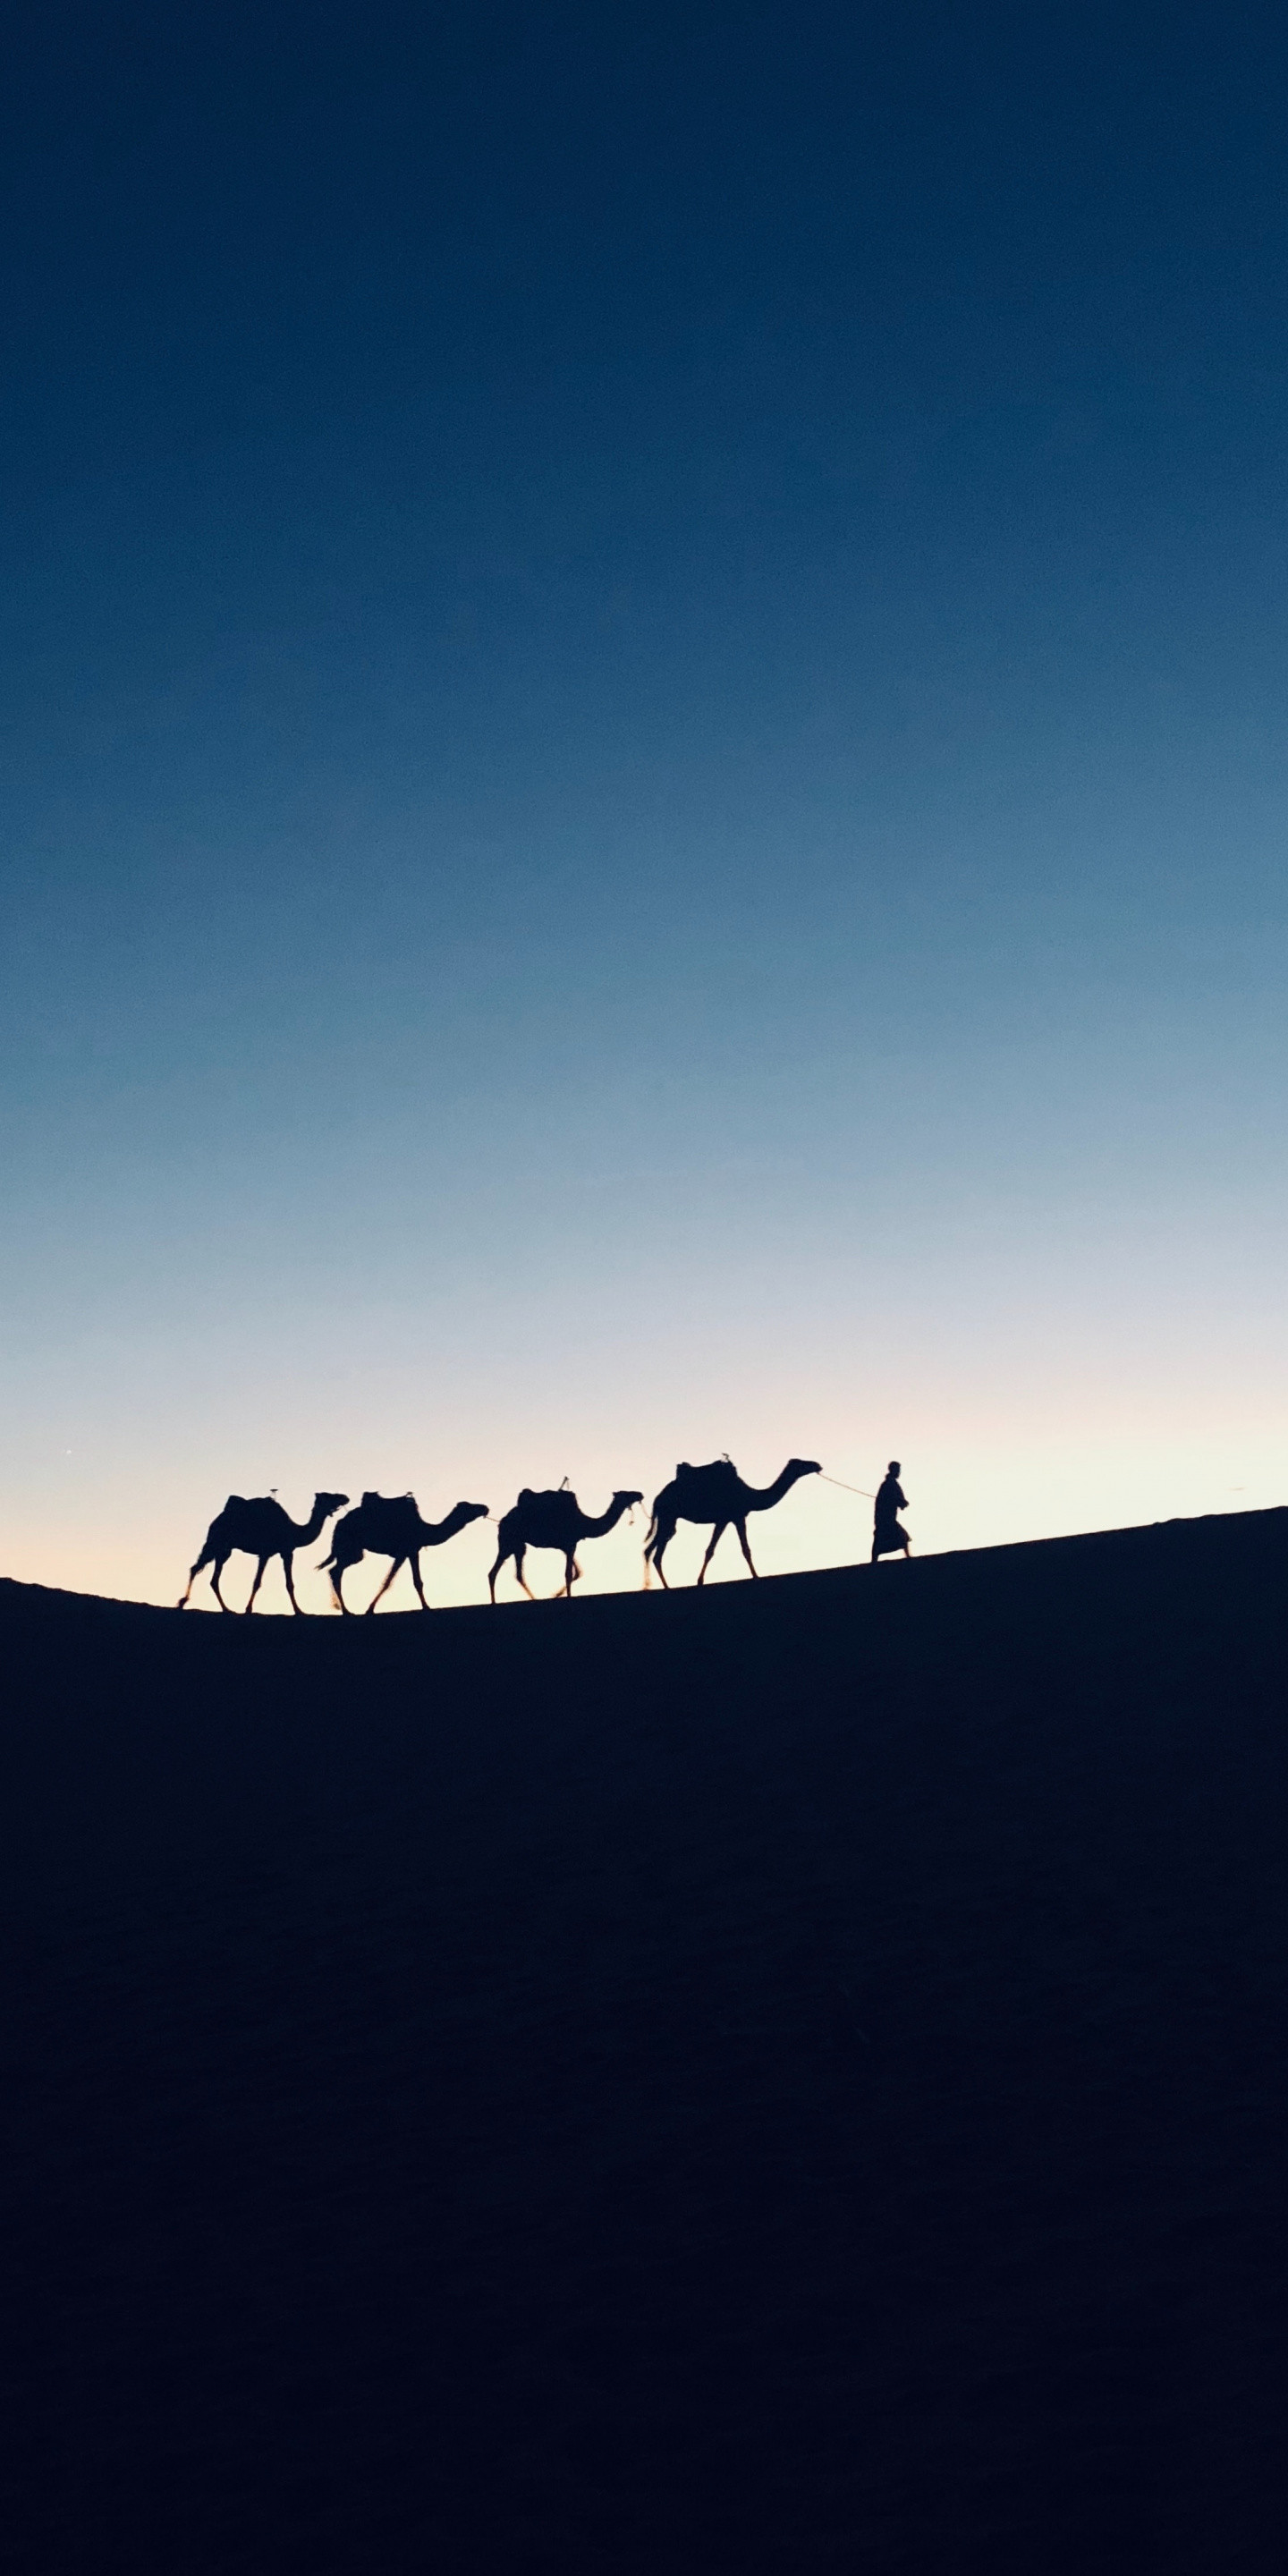 Res: 1440x2880, Silhouette, sunset, camel, Morocco,  wallpaper